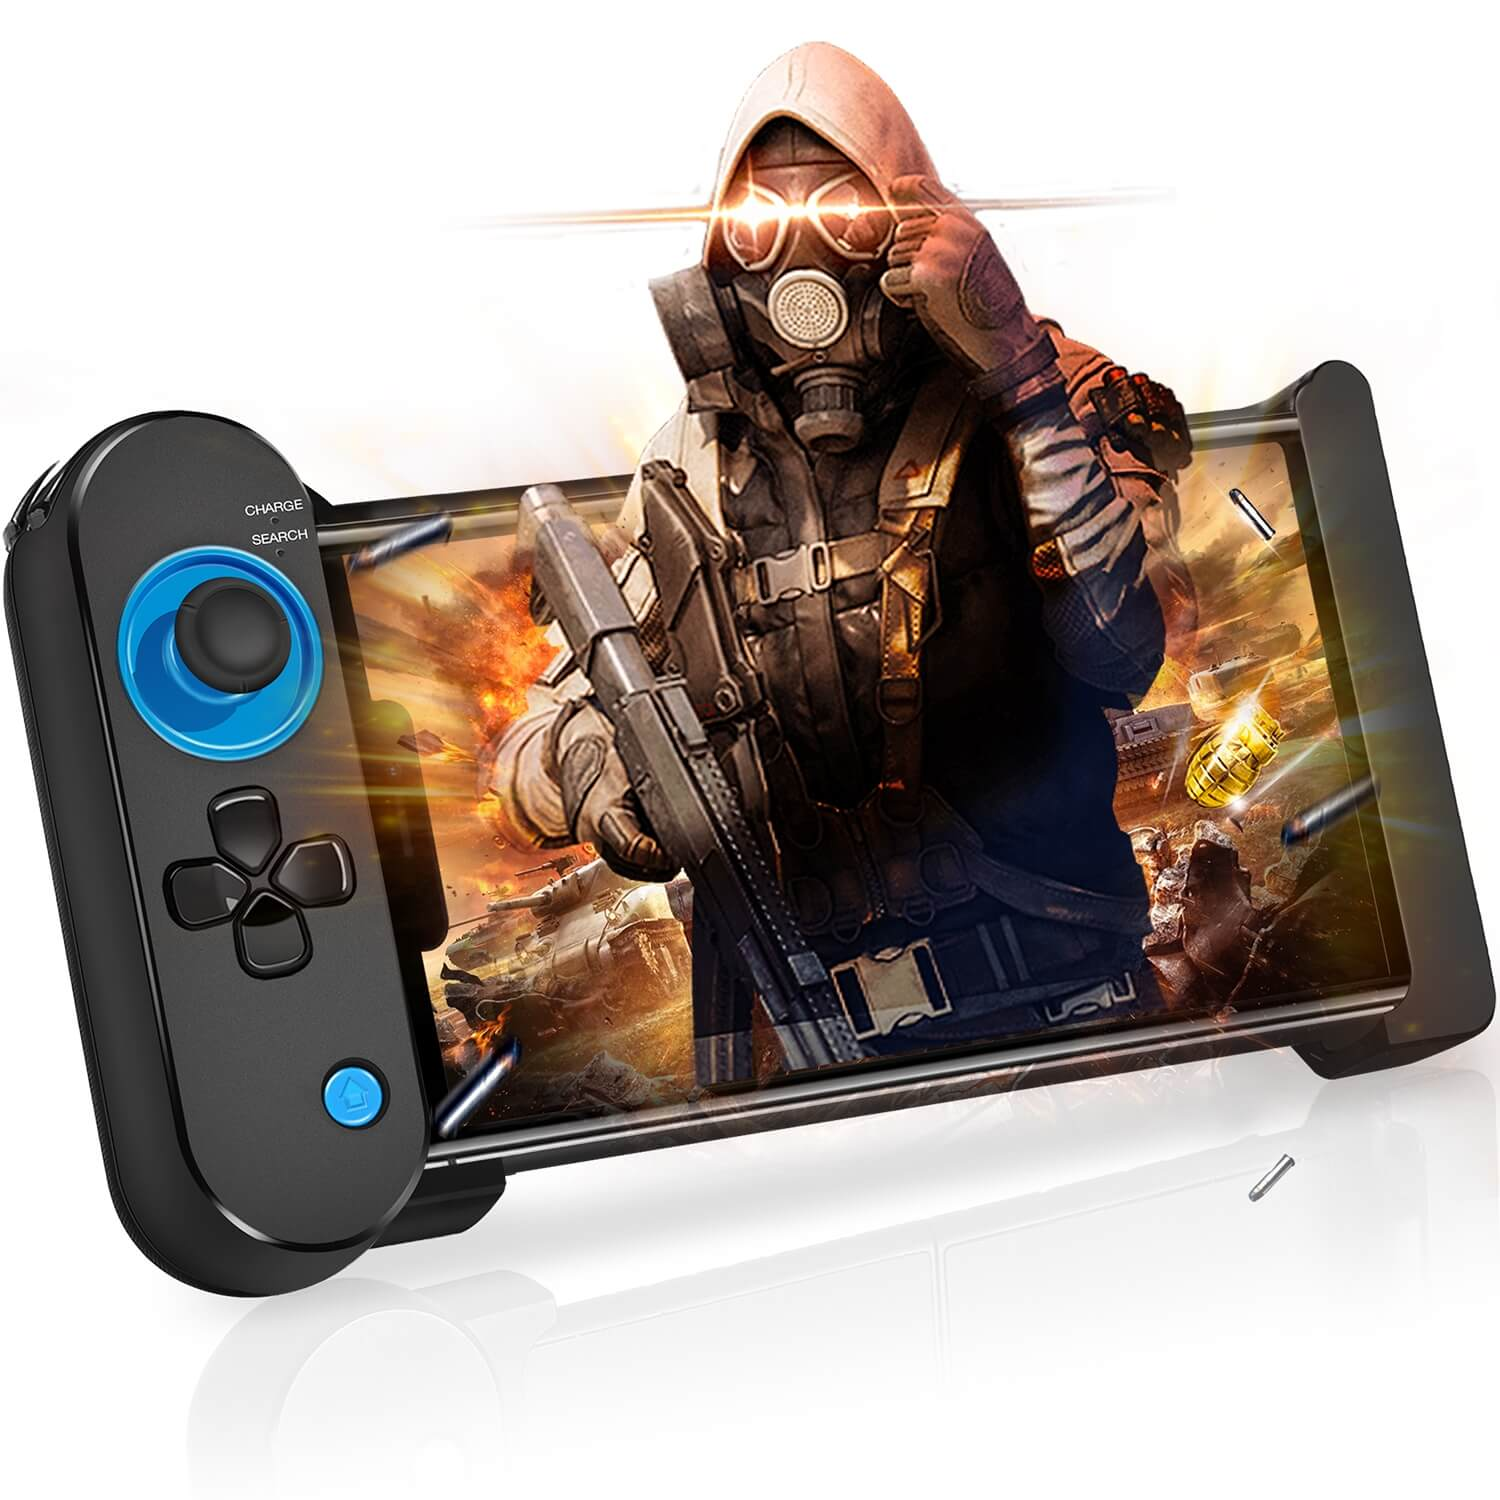 BEBONCOOL Wireless IOS Controller/Mobile Controller for iPhone / iPad